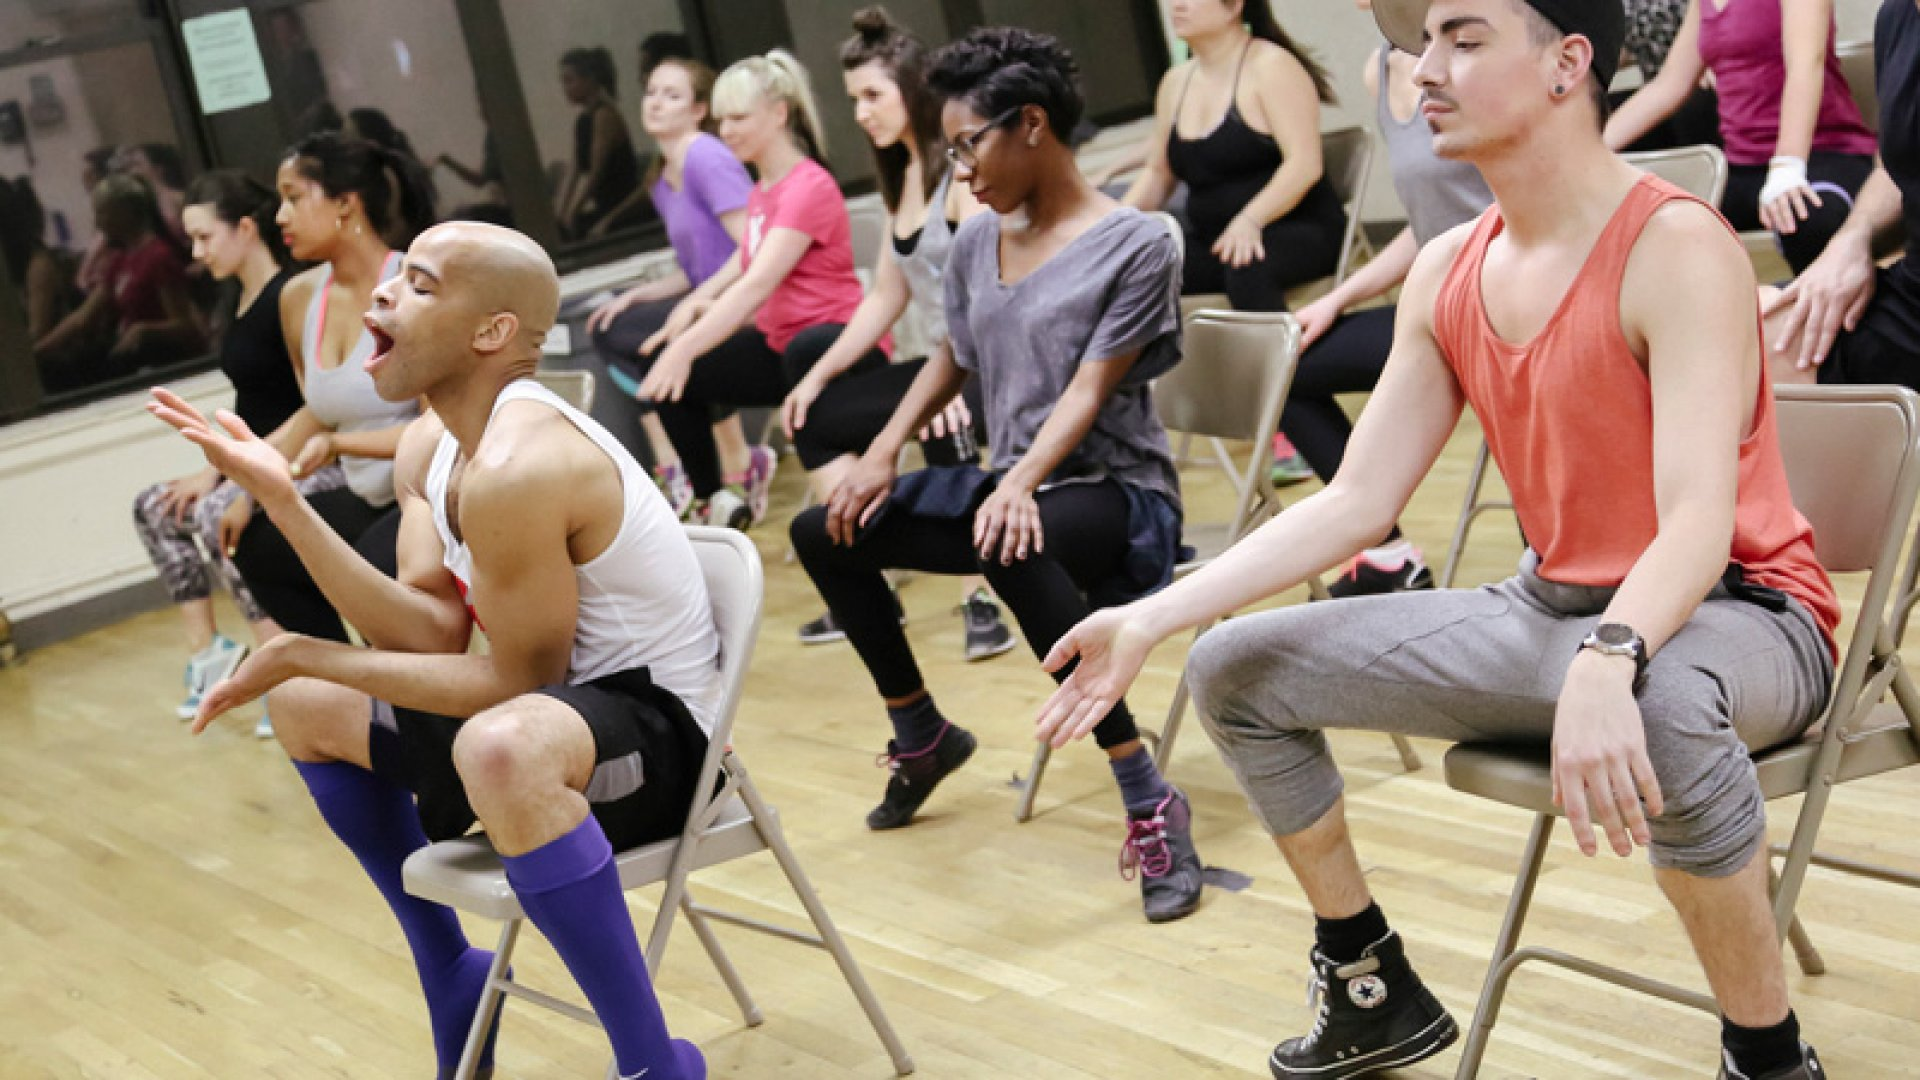 Fitness Entrepreneurs Find Inspiration in Ballet and Beyoncé